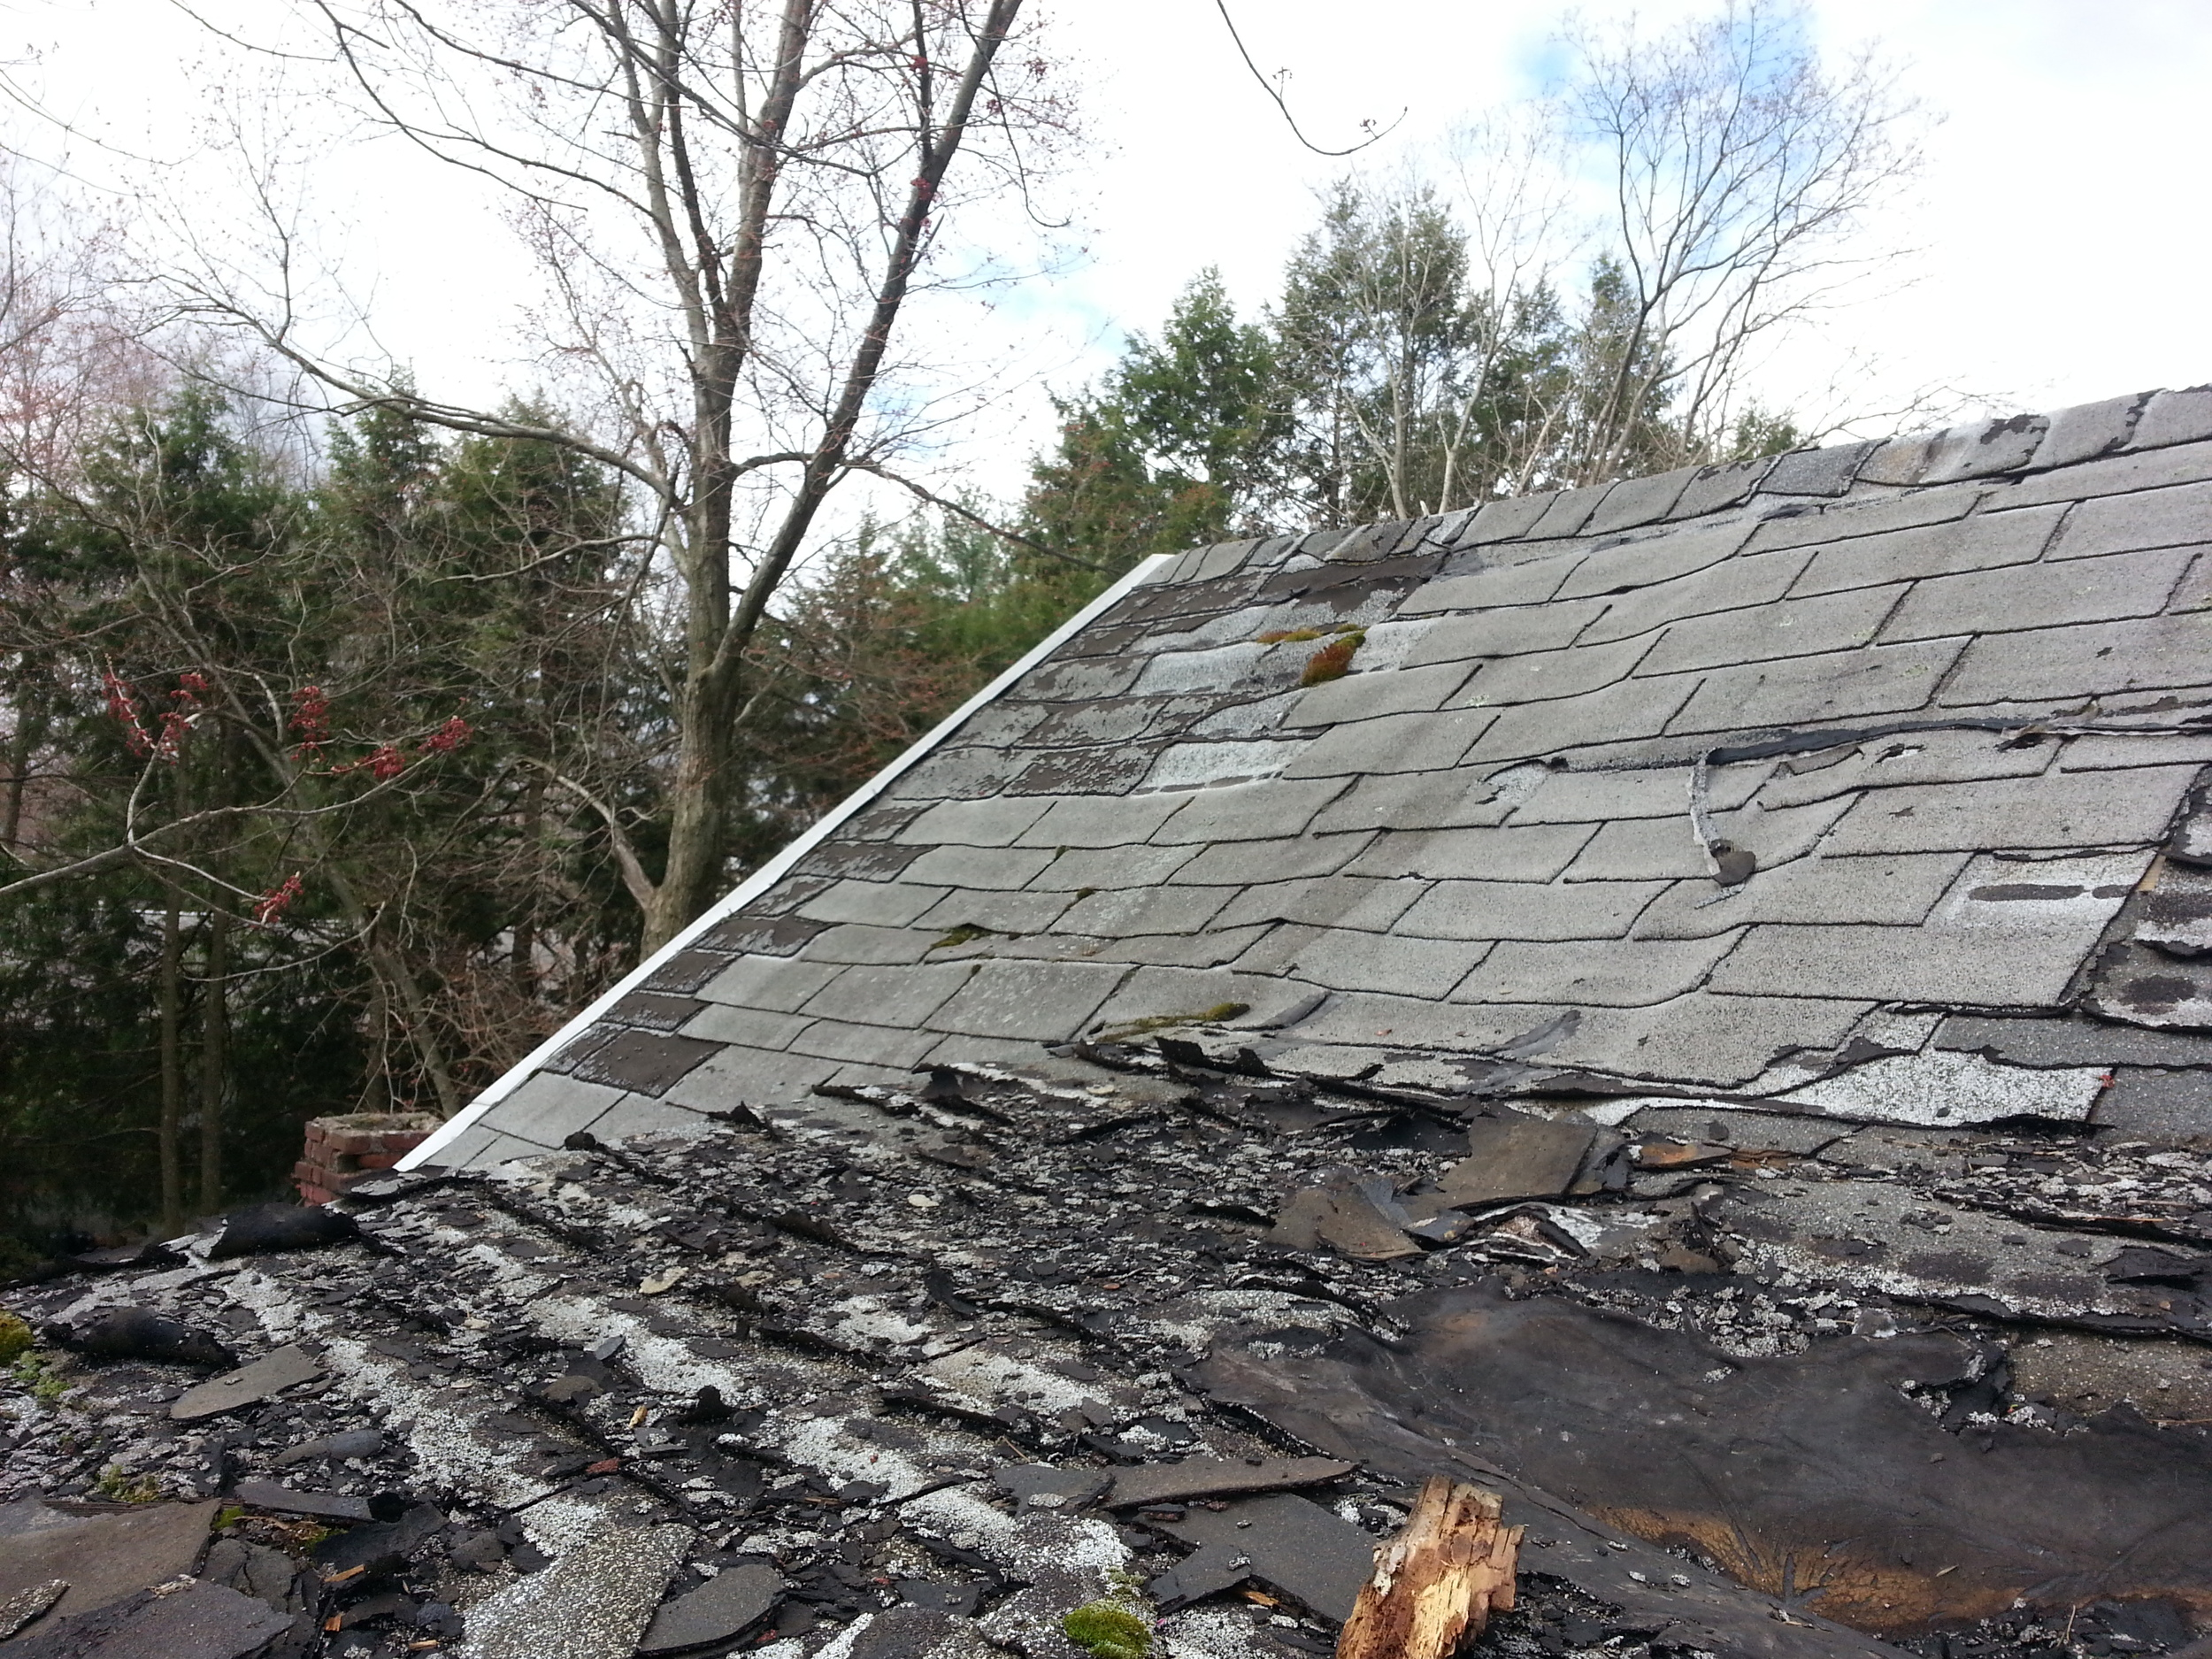 This roof needs to be replaced by Groundswell Contracting